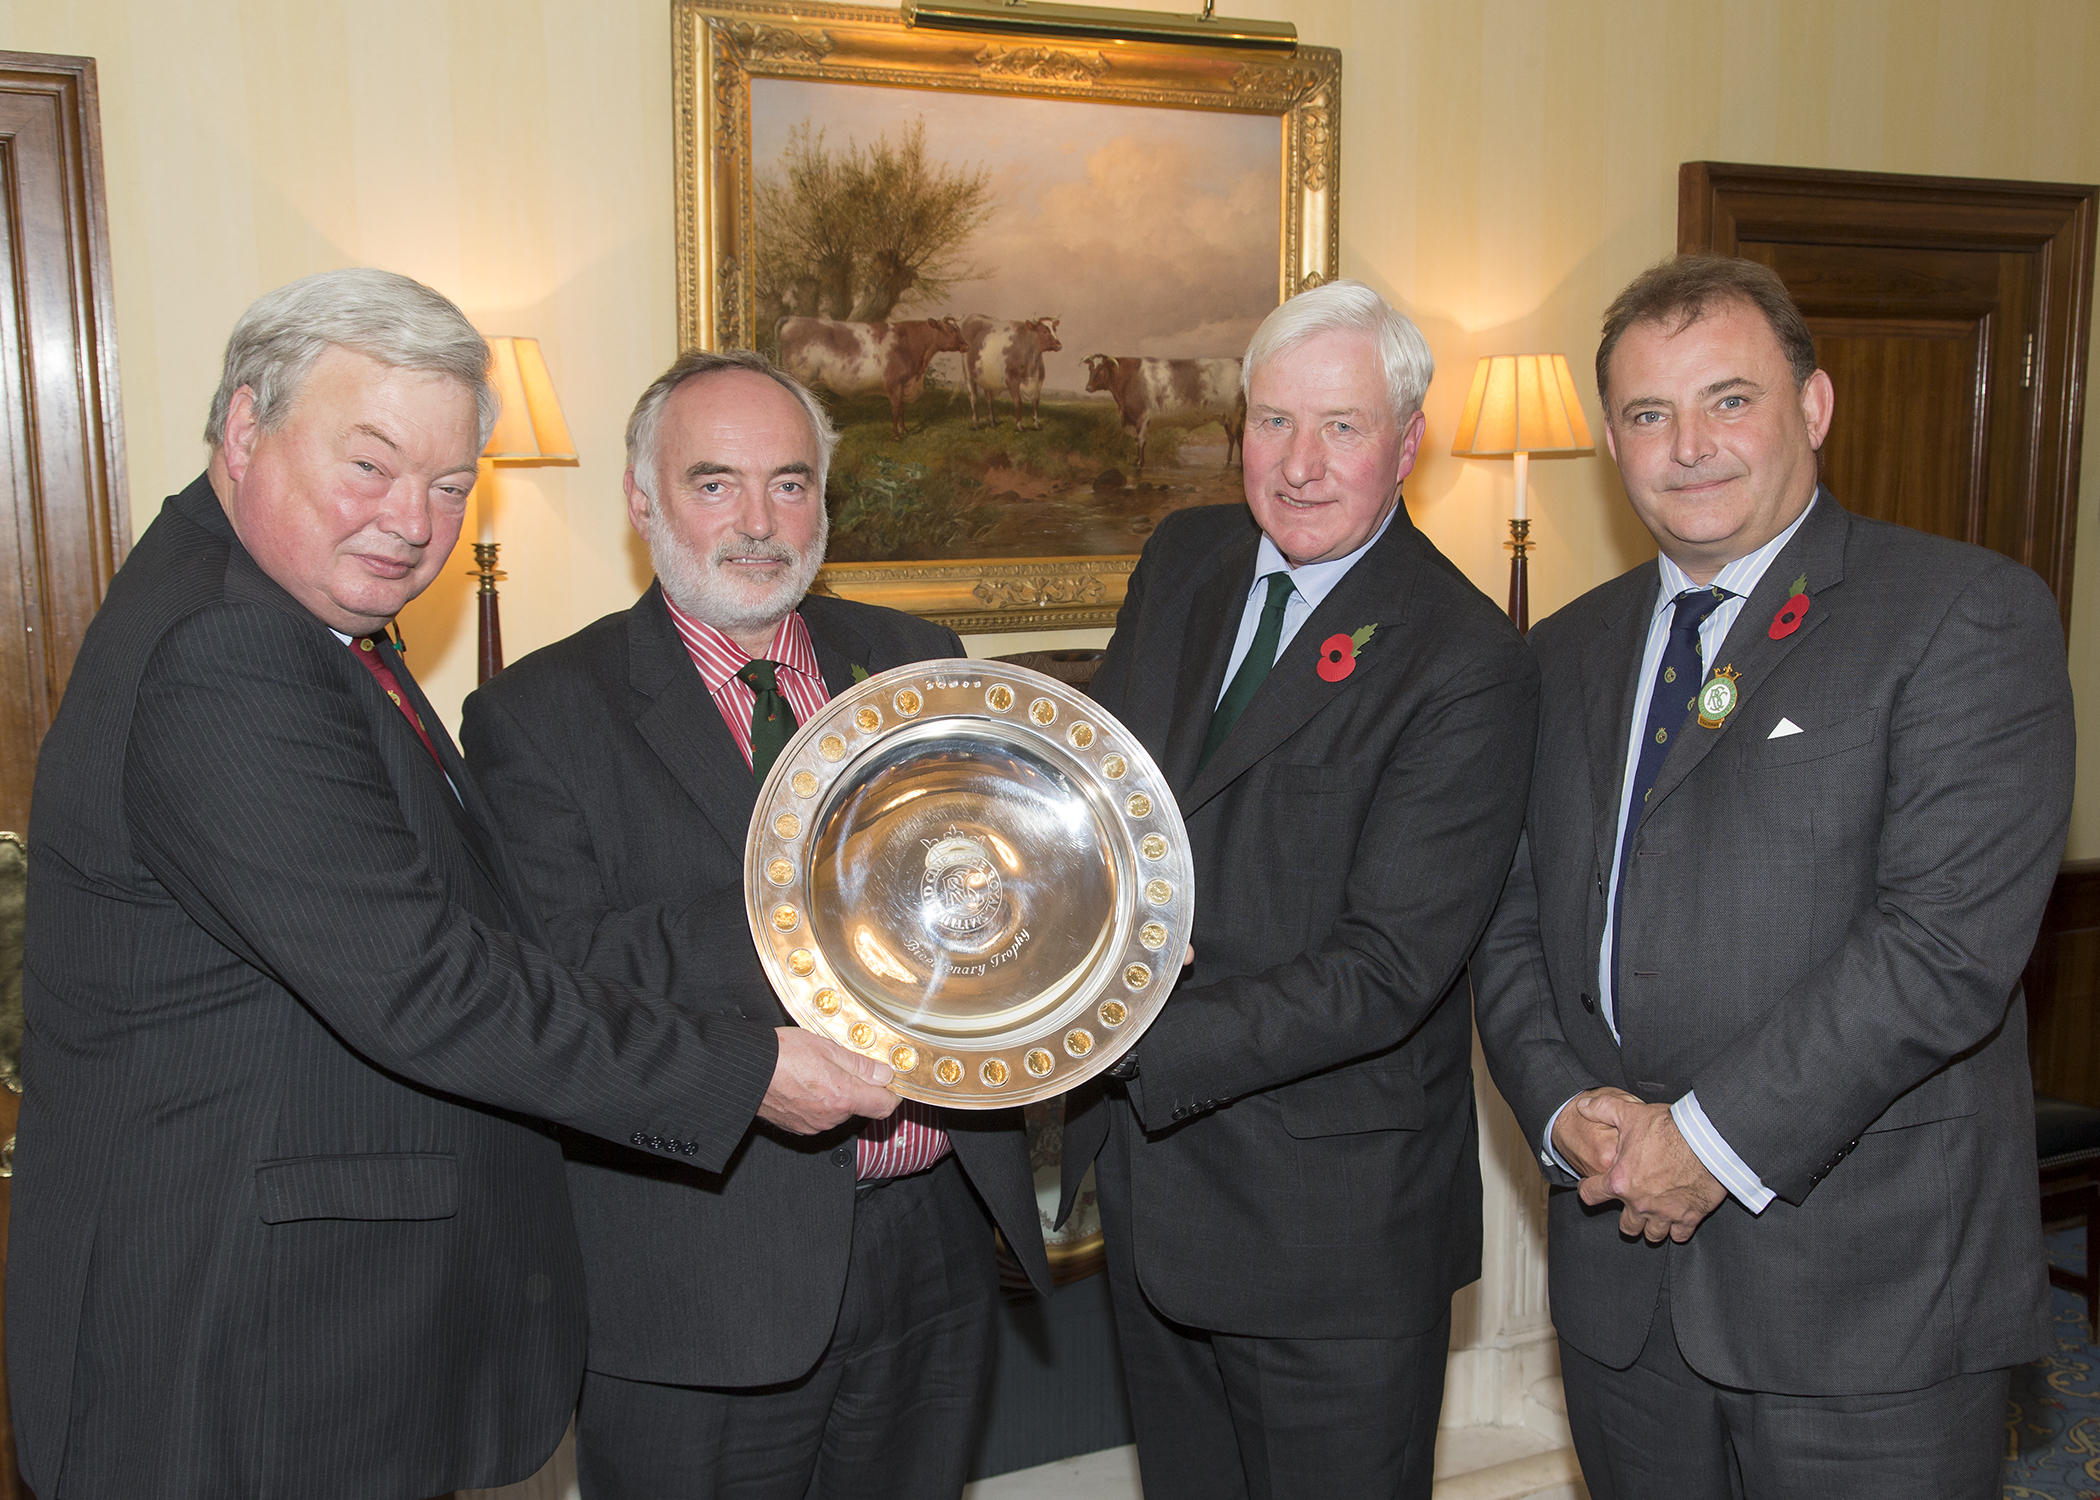 Nuffield Farming Scholarships presented with the Royal Smithfield Club Bicentenary Award. Left to right: Andrew Gilmour (The President, Royal Smithfield Club), Stephen Watkins (Chairman, Nuffield Farming Scholarships Trust), Mike Vacher (Director, Nuffield Farming Scholarships Trust), Angus Stovold (The Chairman, Royal Smithfield Club)